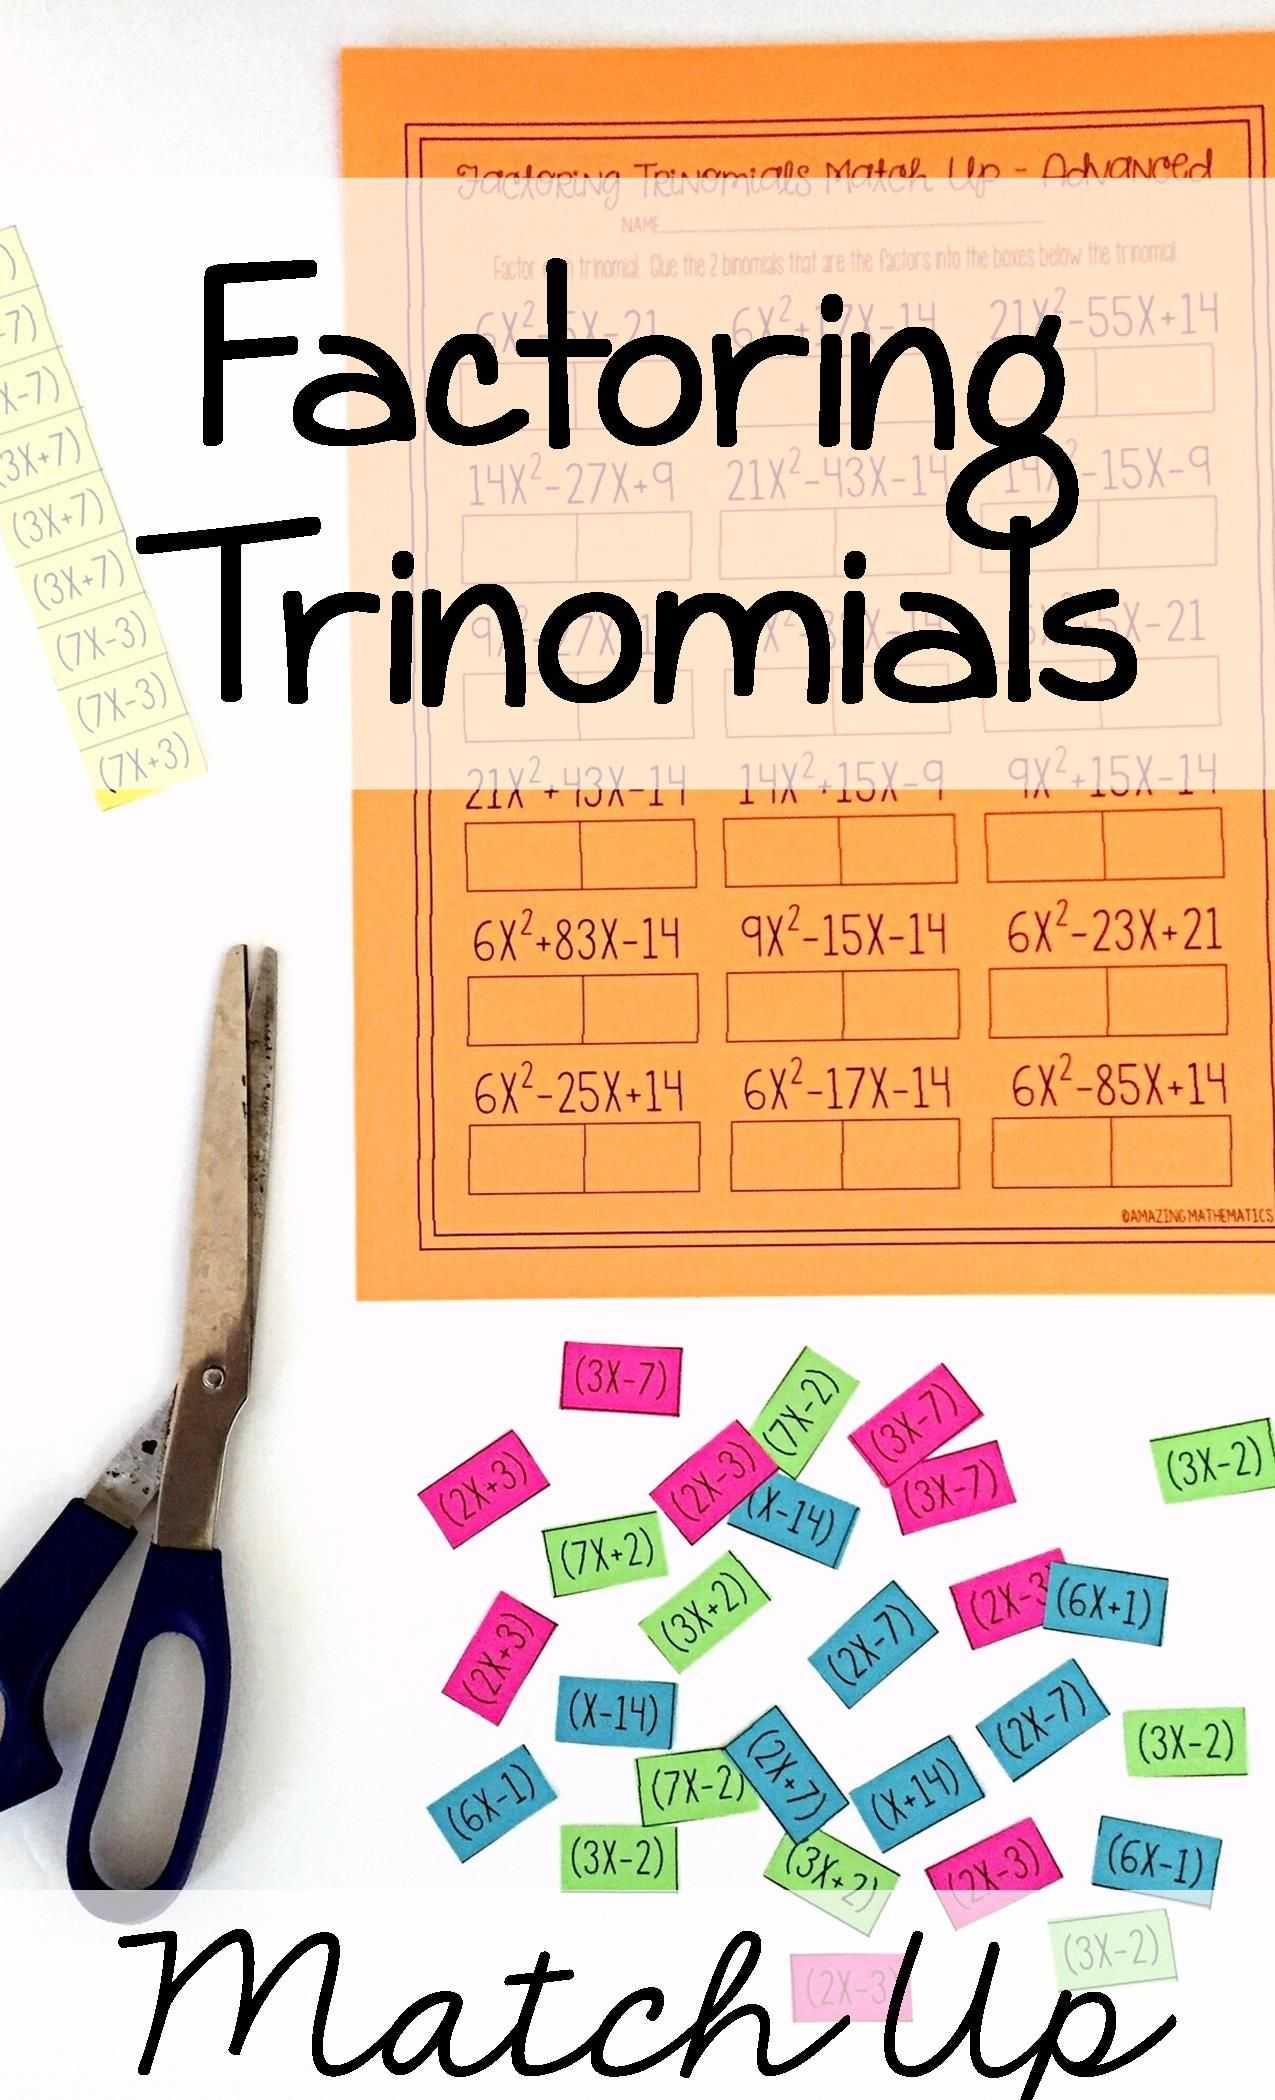 Transformation Practice Worksheet or Factoring Polynomials Activity Advanced Pinterest